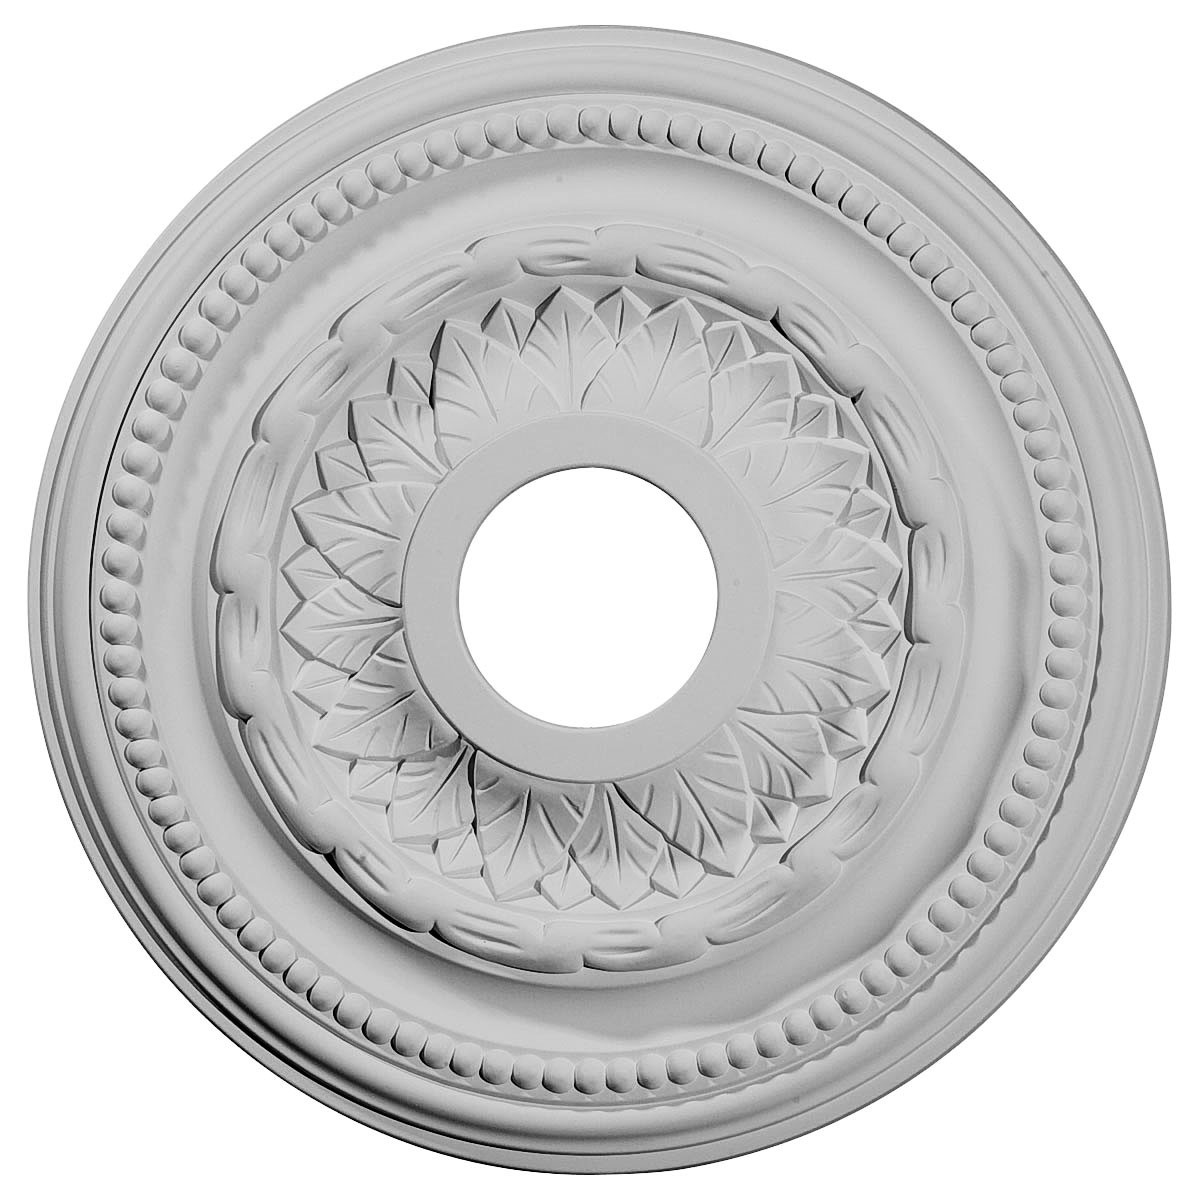 """EM-CM15GA - 15 3/4""""OD x 3 1/4""""ID x 1""""P Galway Ceiling Medallion (Fits Canopies up to 3 1/4"""")"""